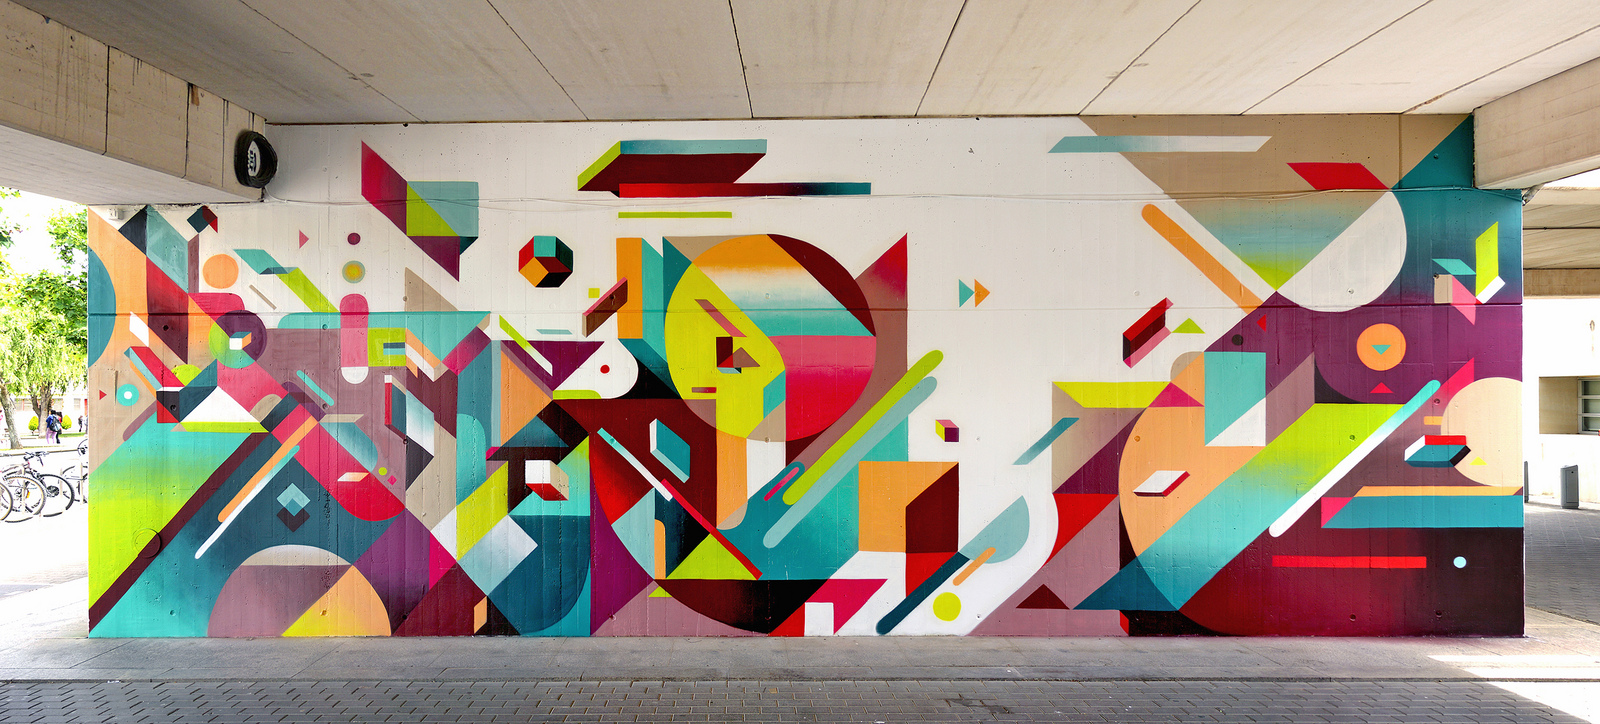 Nelio new mural in valencia spain streetartnews for Contemporary mural